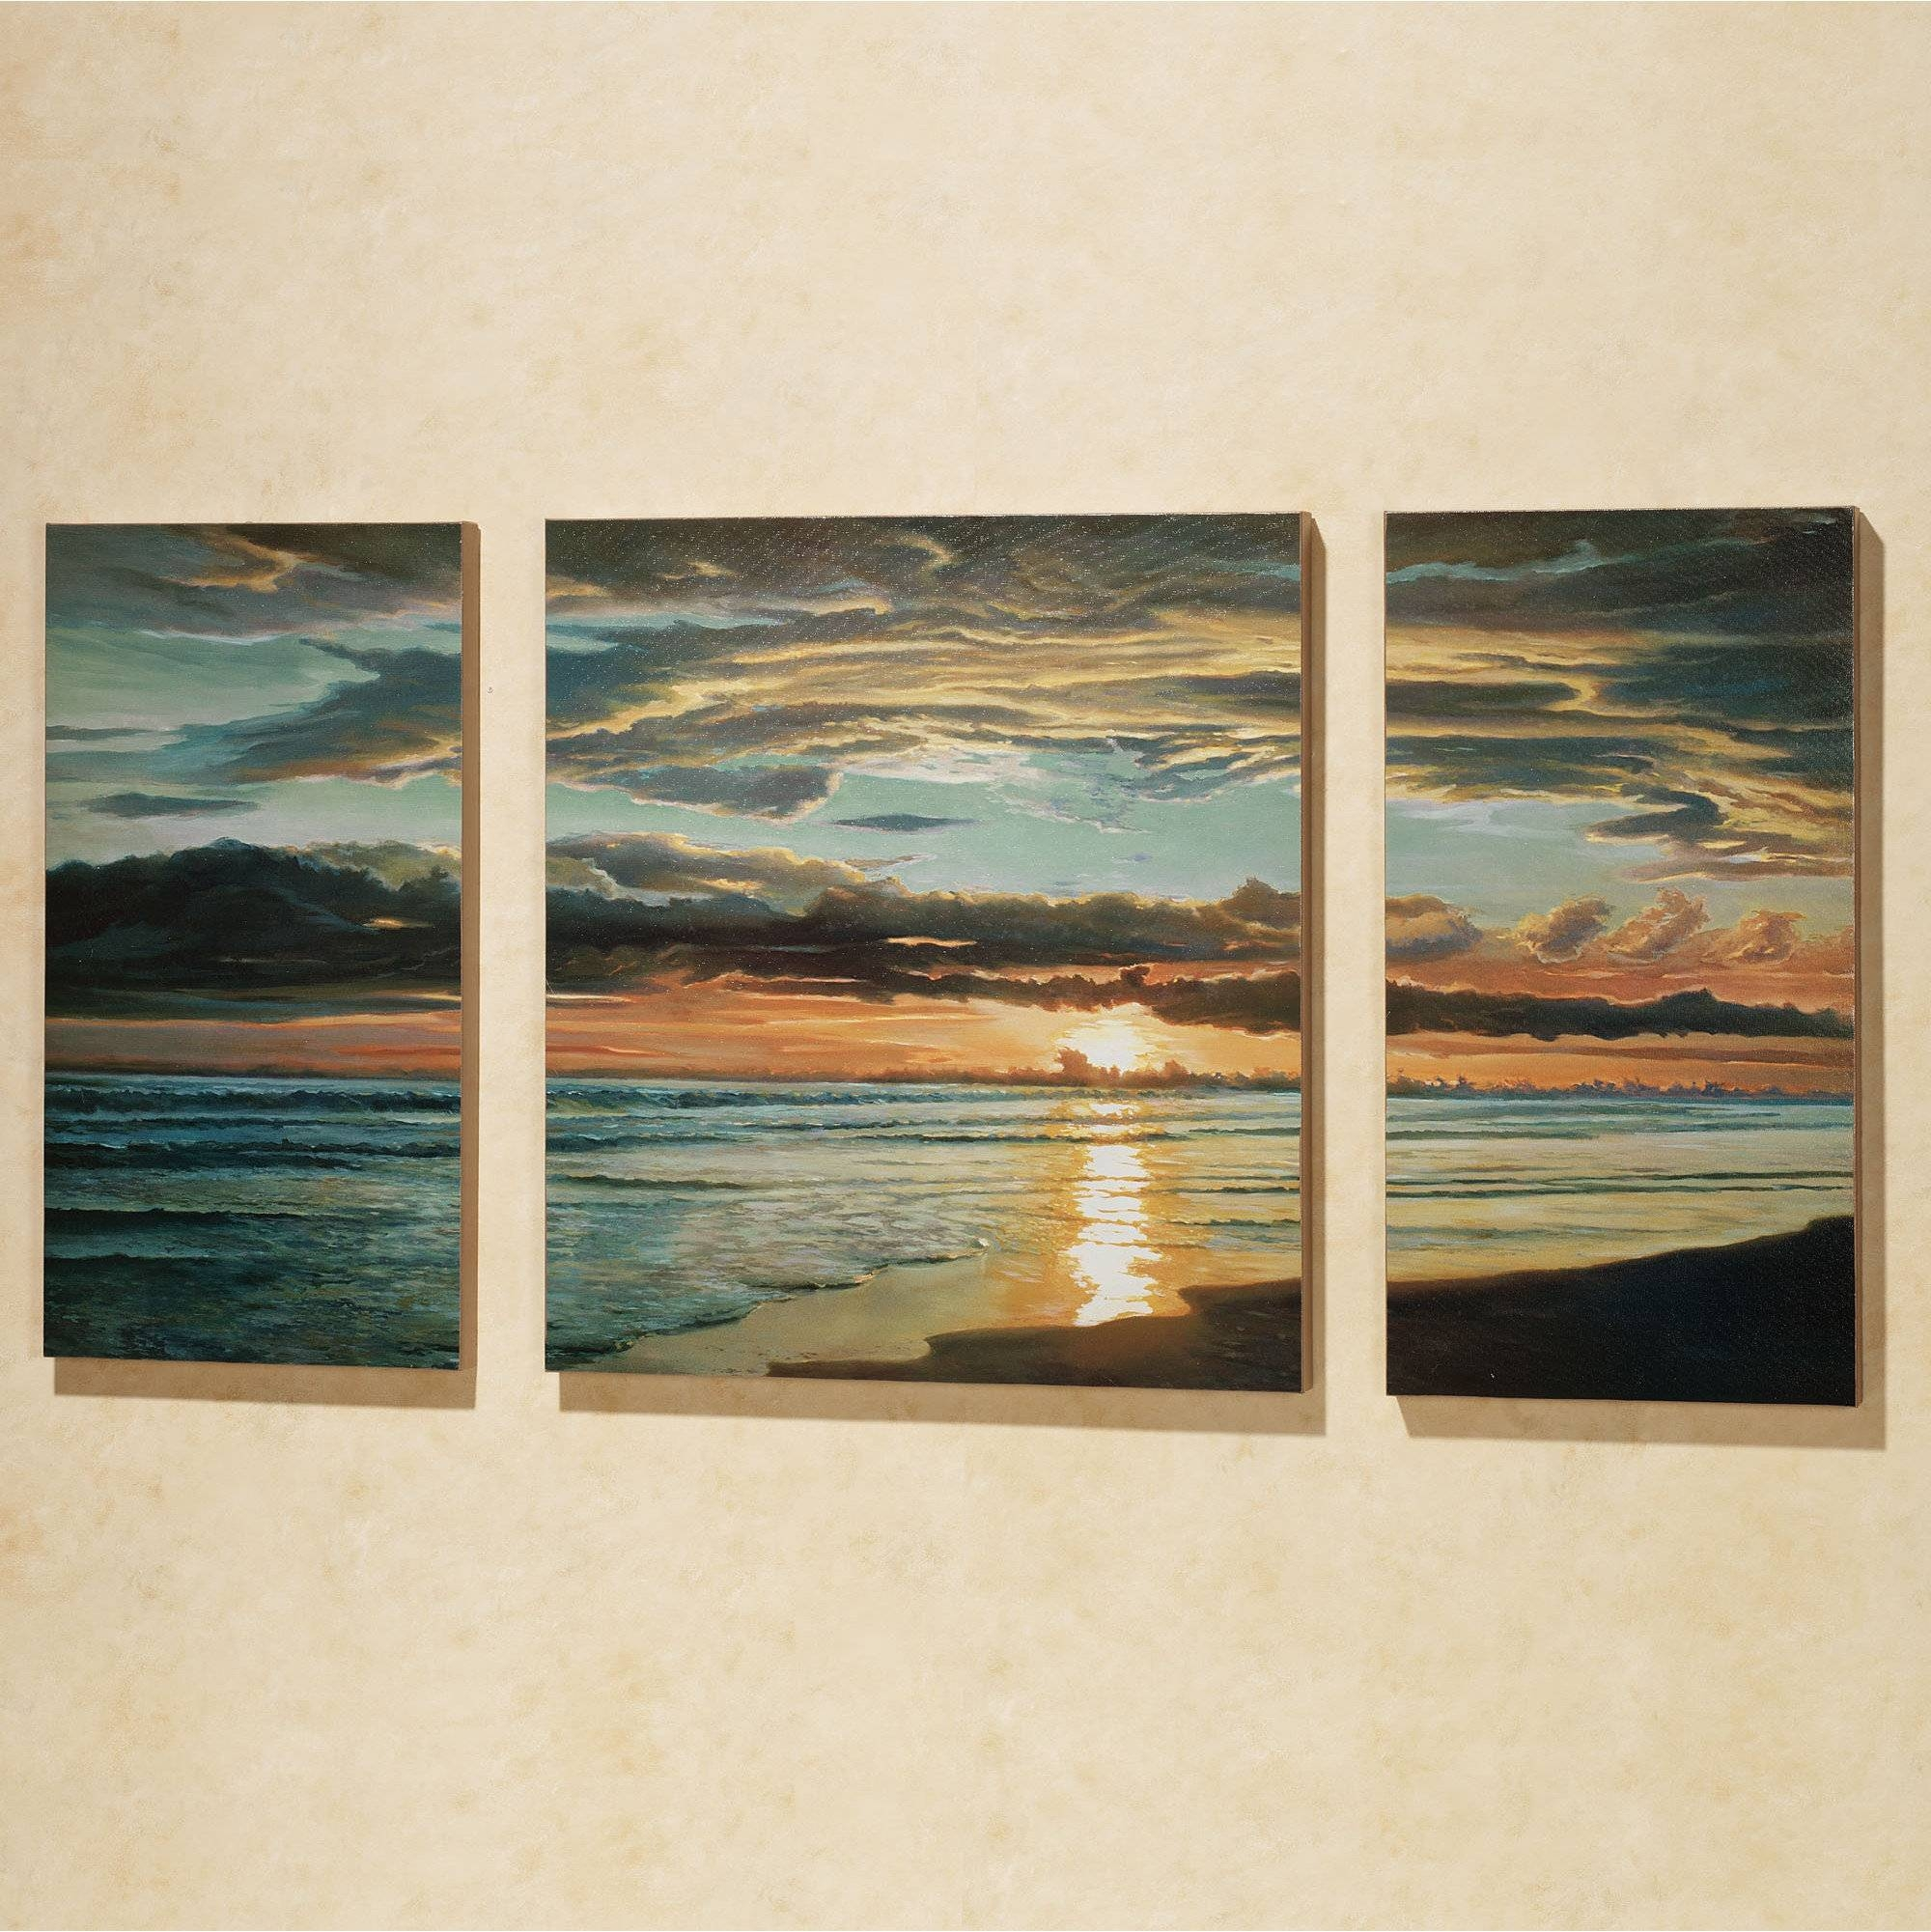 Wall Art Designs: Prints Canvas Triptych Wall Art Sale Large Metal For 2018 Large Triptych Wall Art (View 2 of 20)